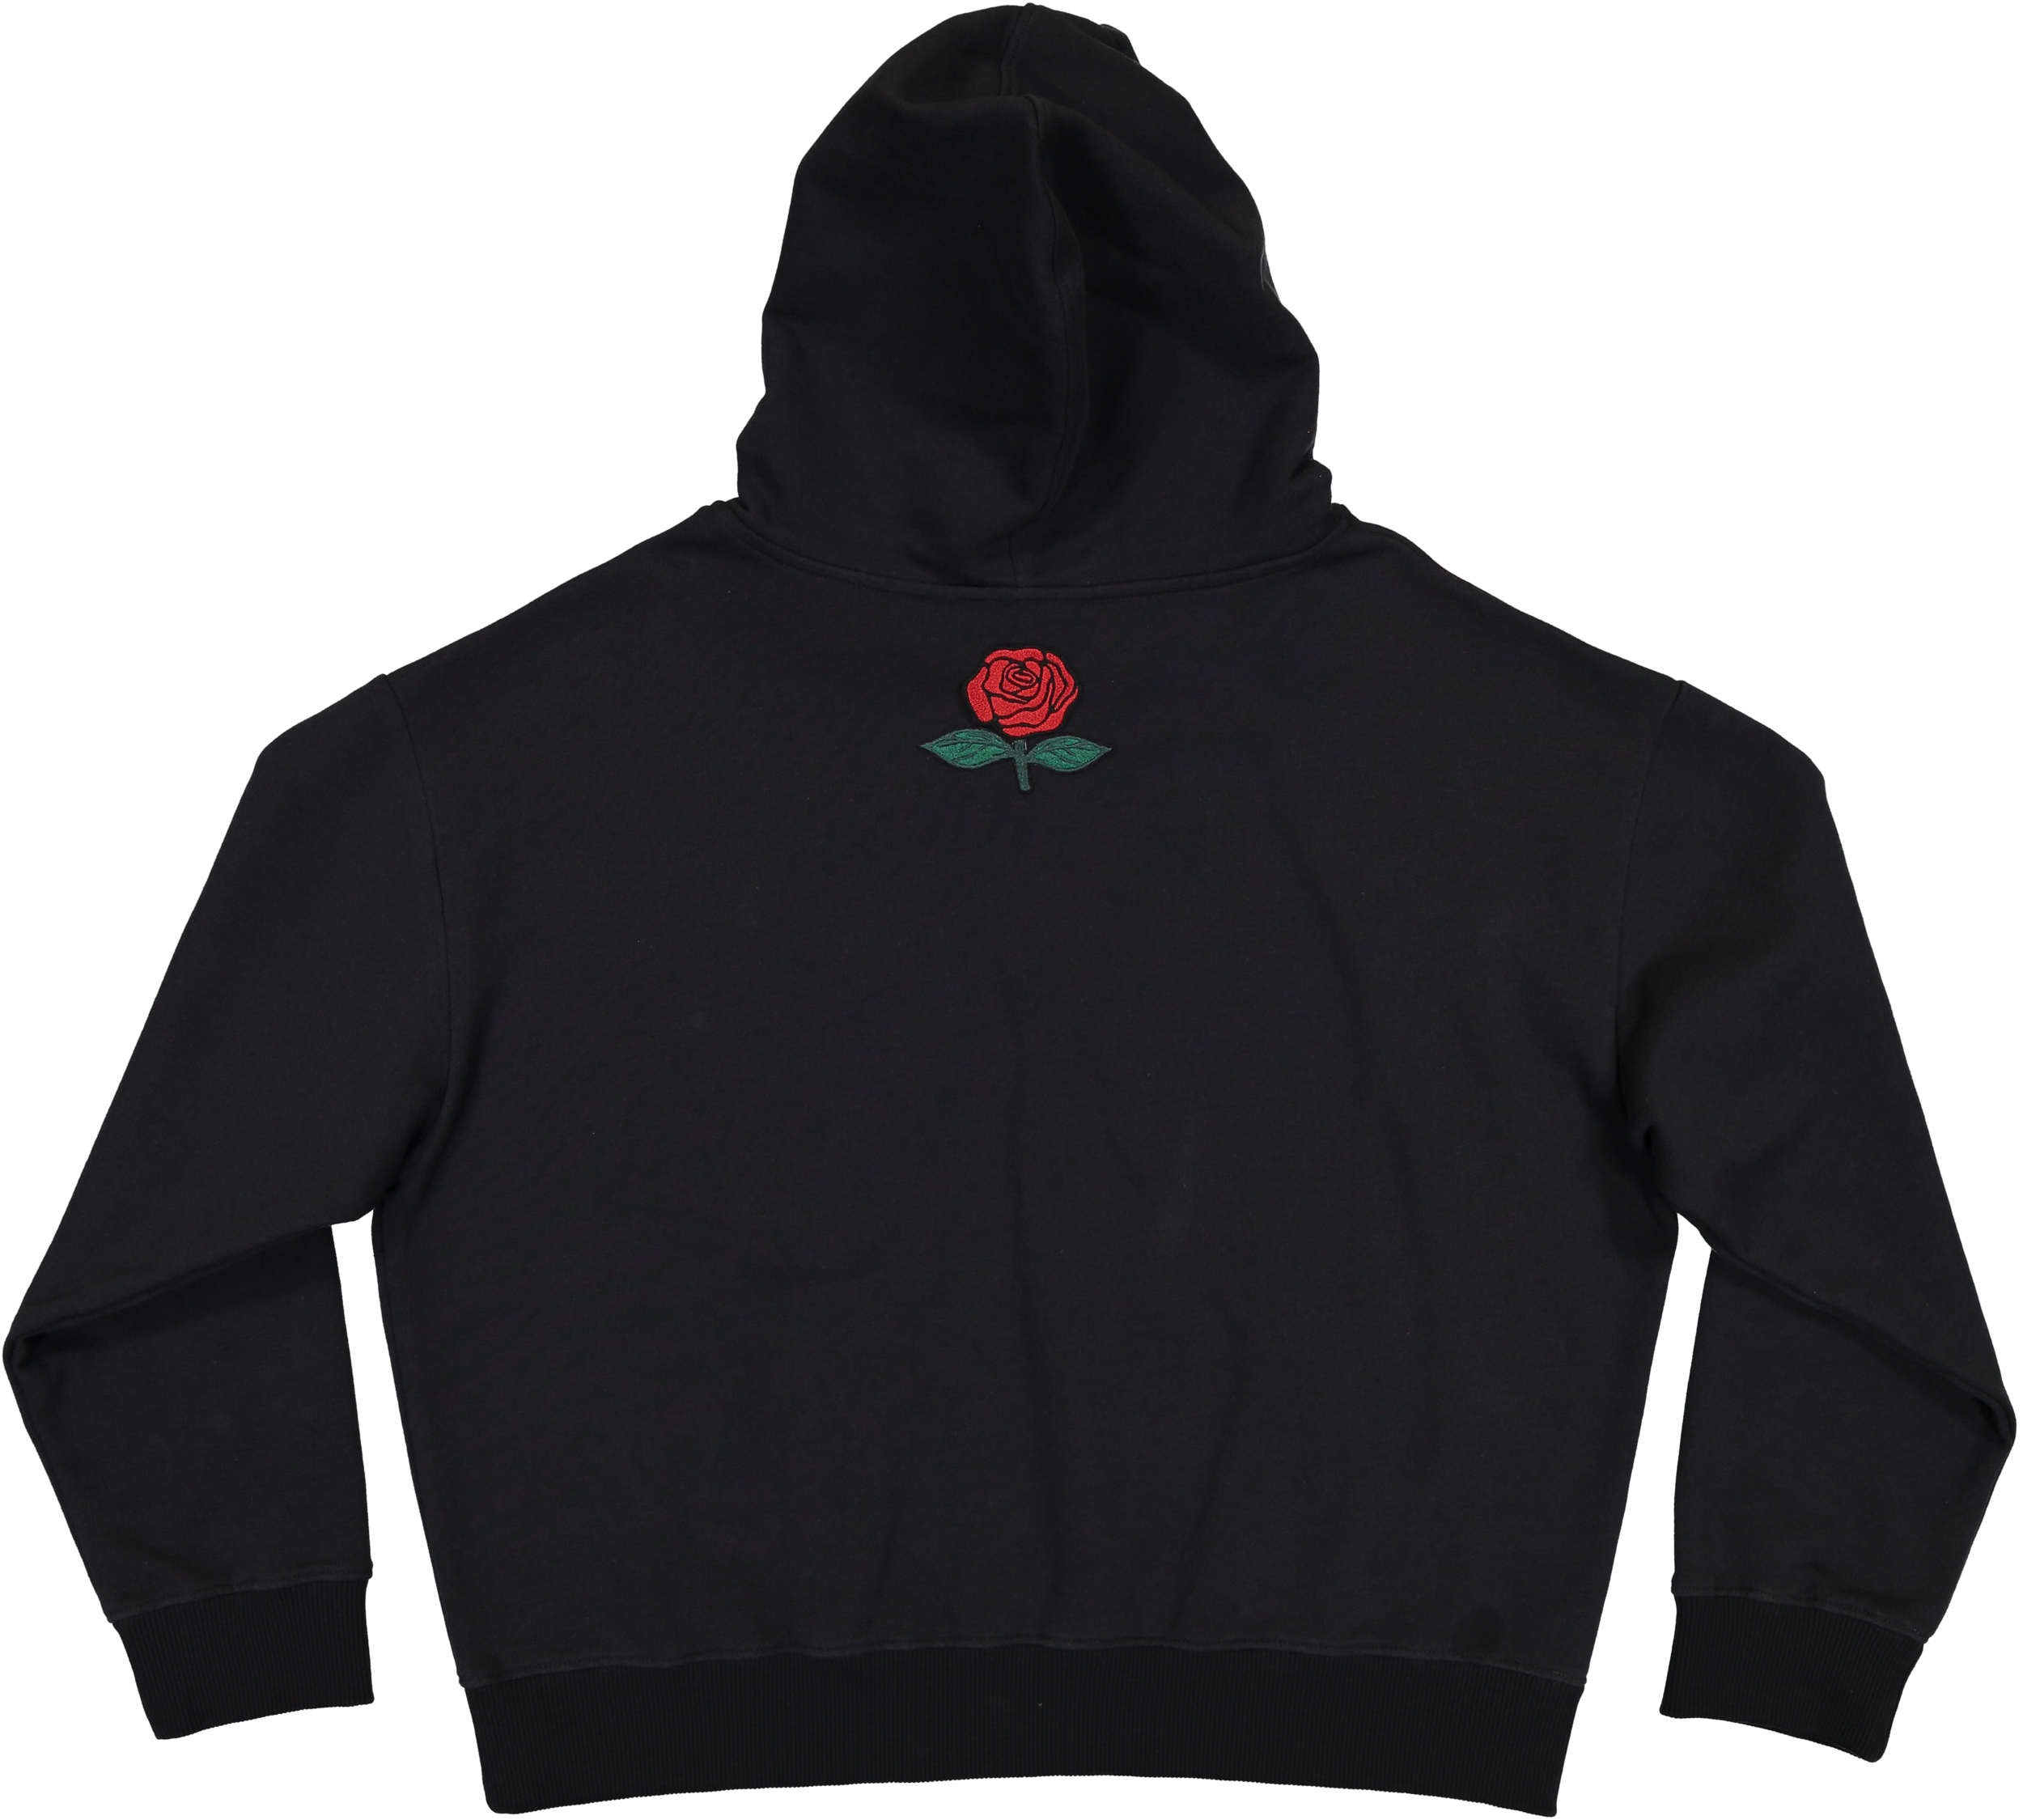 MODEL | 104 (back)  STYLE | BLACK  oversized co fleece hoodie  embroidered rose on the back